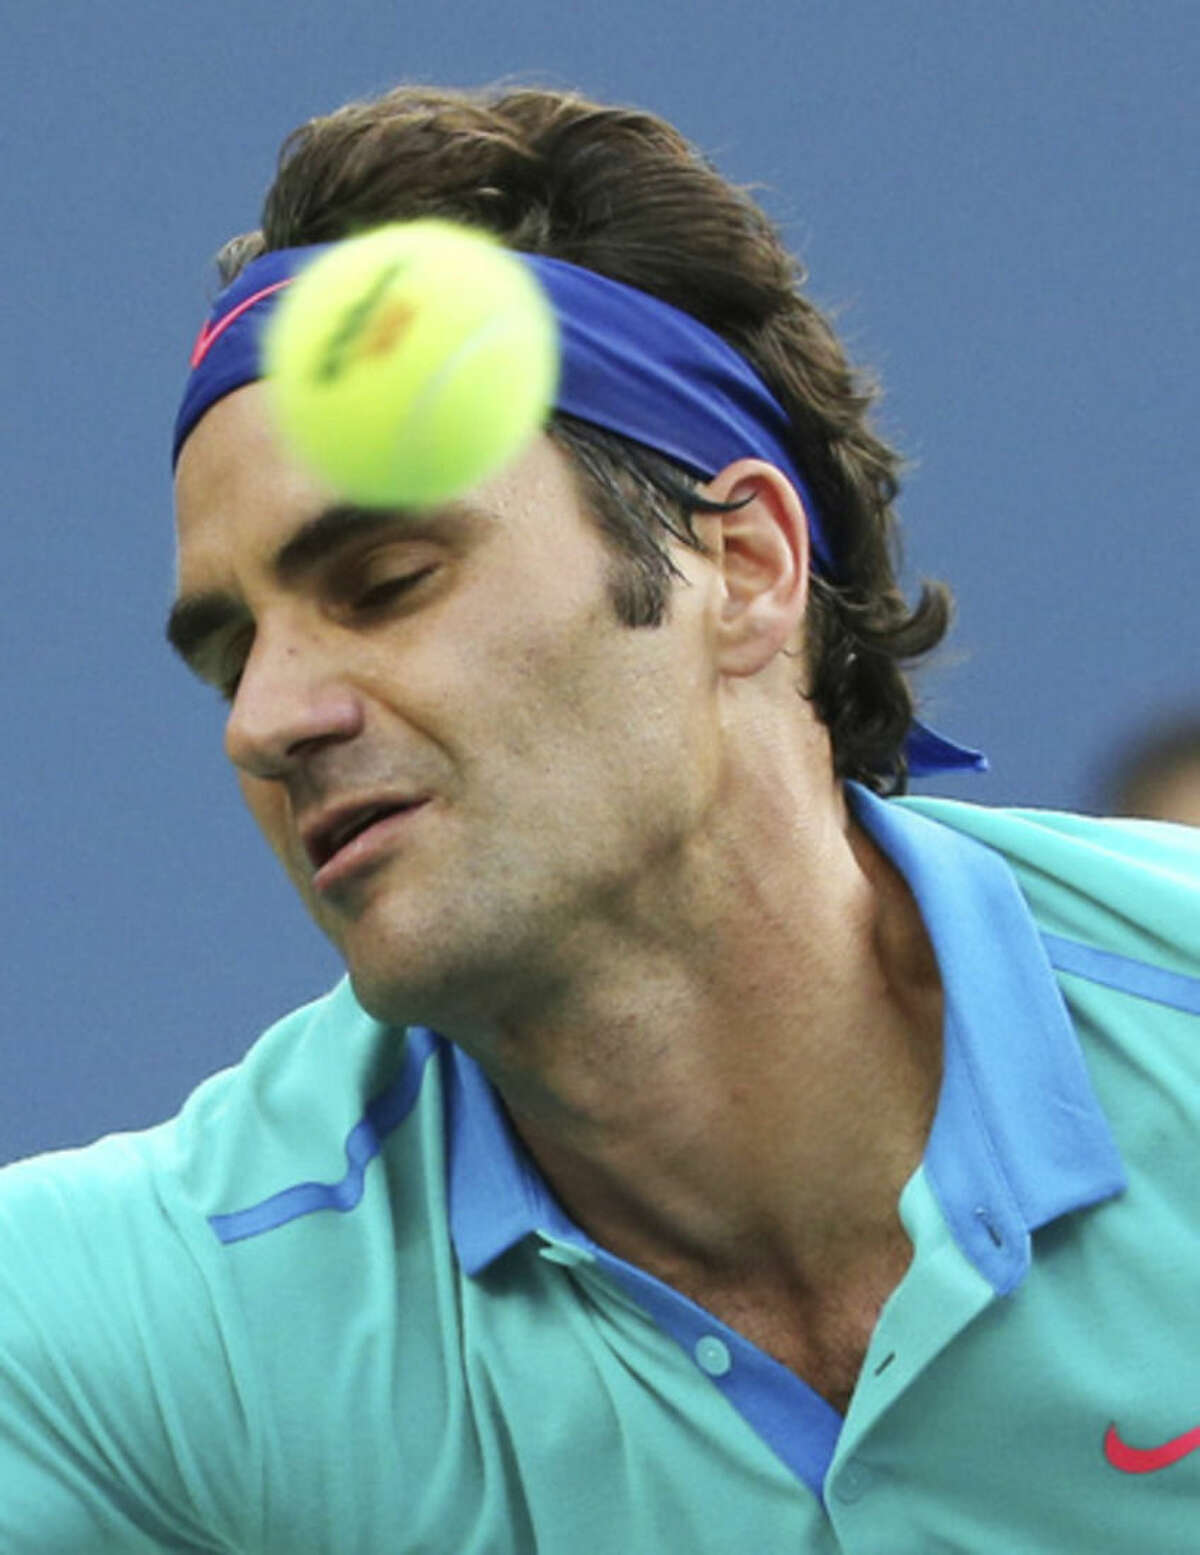 Roger Federer, of Switzerland, returns a shot against Marin Cilic, of Croatia, during the semifinals of the 2014 U.S. Open tennis tournament, Saturday, Sept. 6, 2014, in New York. (AP Photo/Mike Groll)